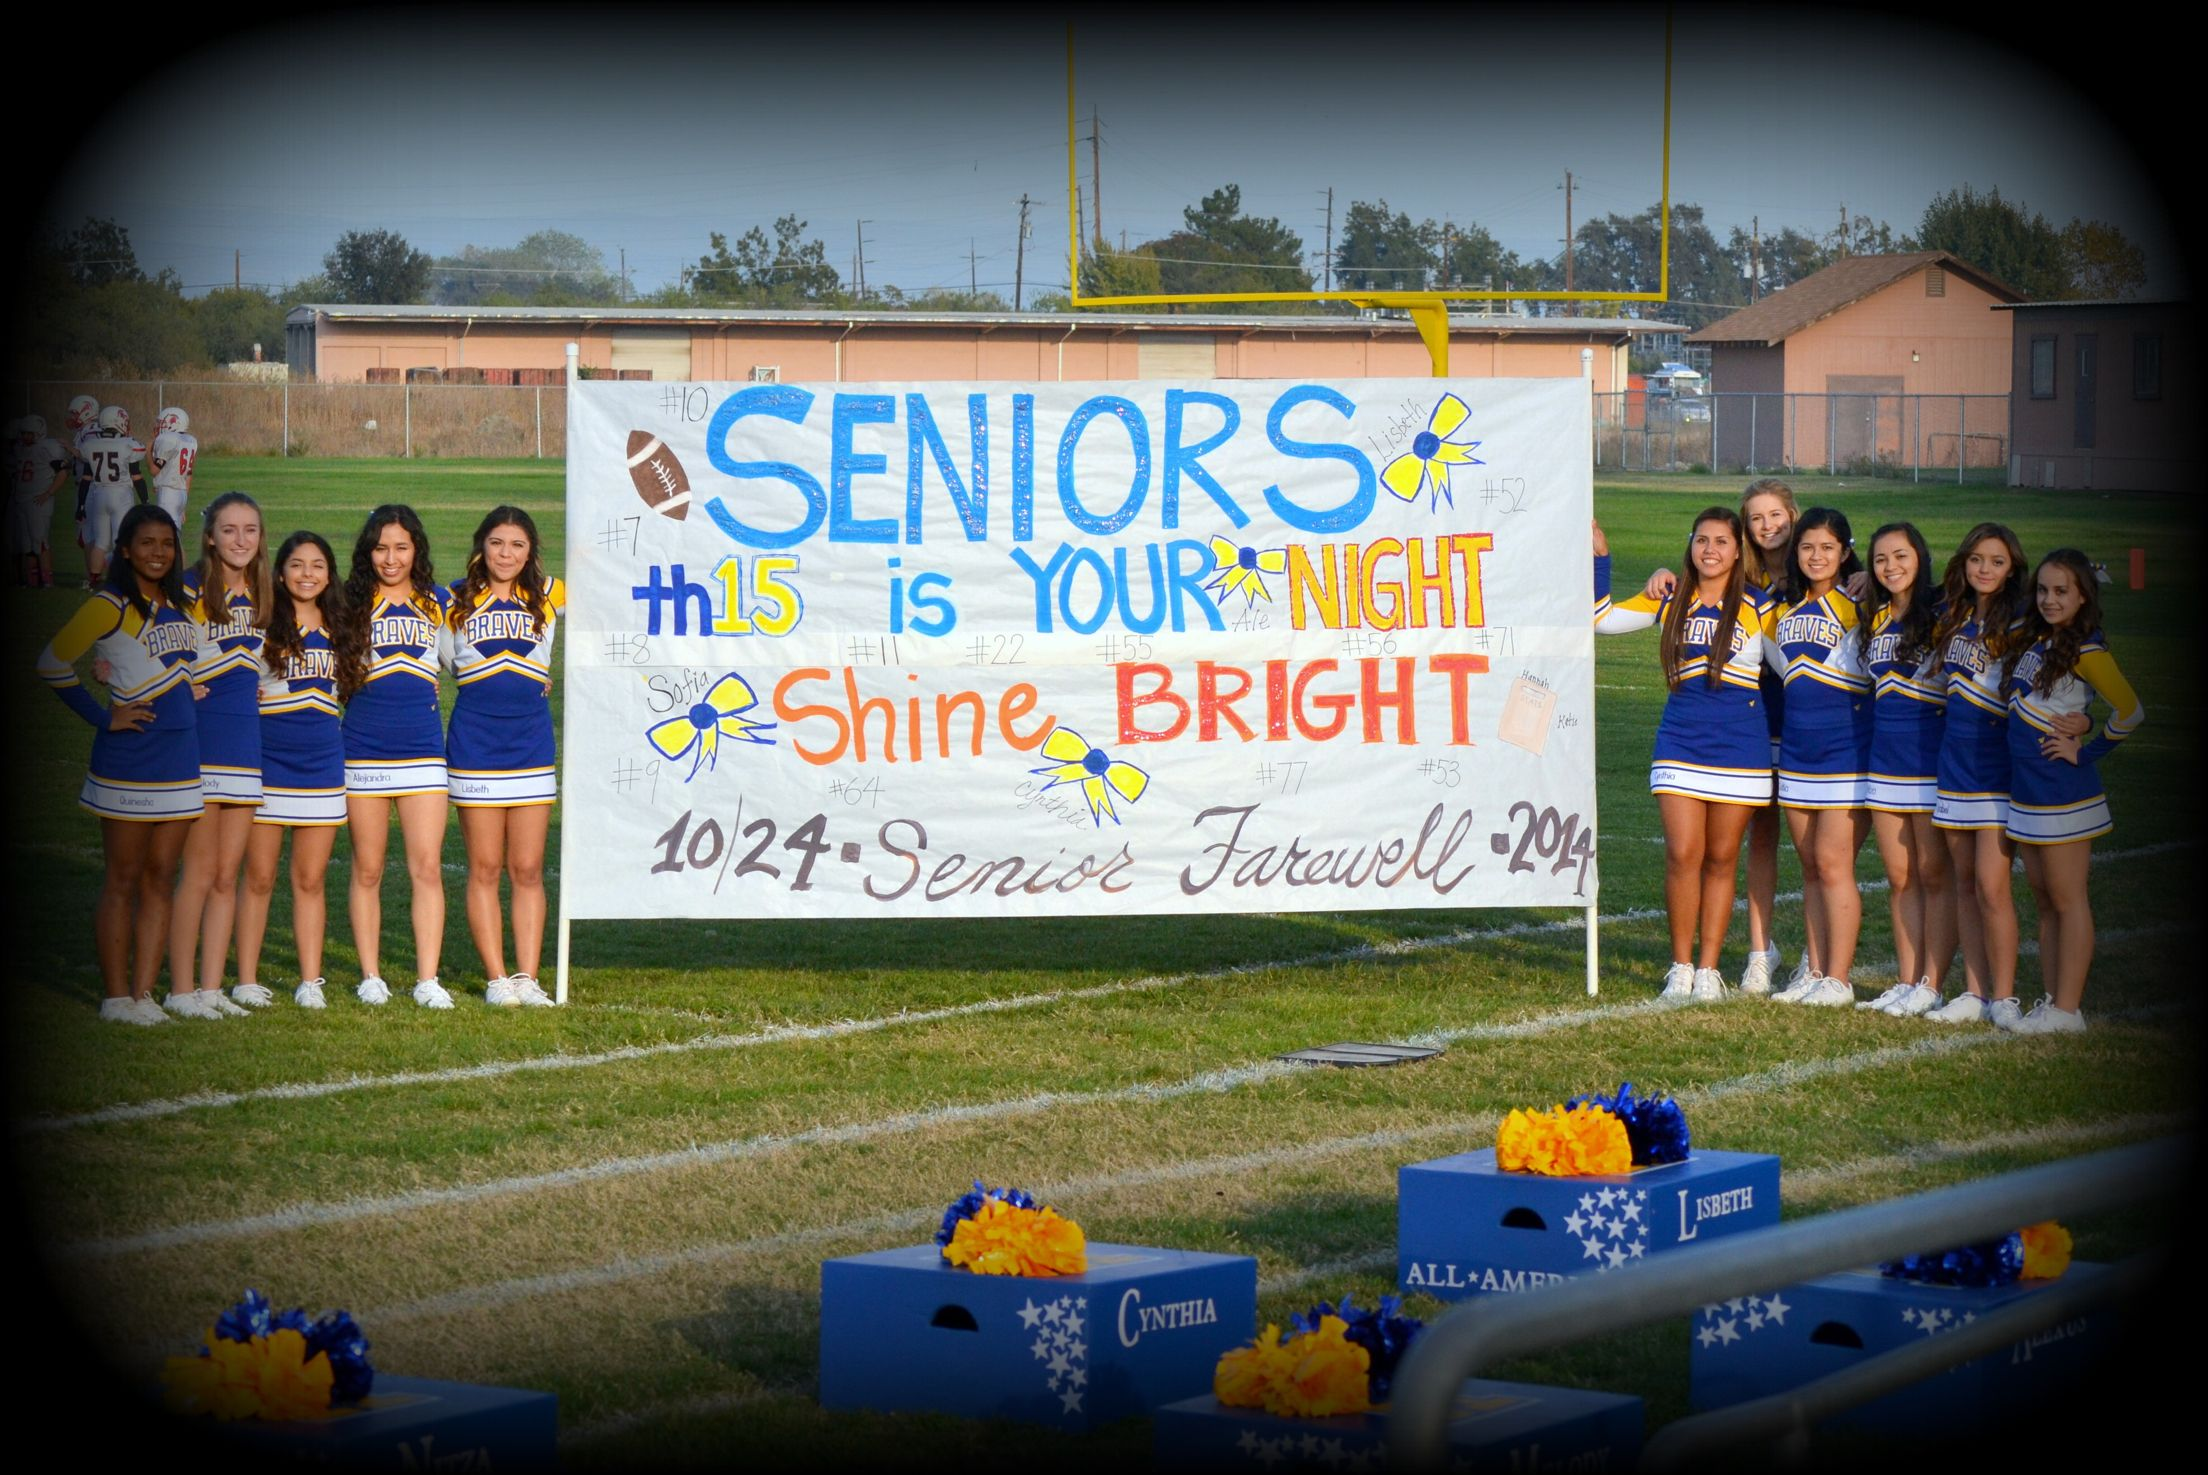 Senior Night Seniors Shine Bright This Is Your Night Th15 2015 But Can Change N16ht Or Br16ht For 2016 Senior Night Football Cheer Signs Varsity Cheer